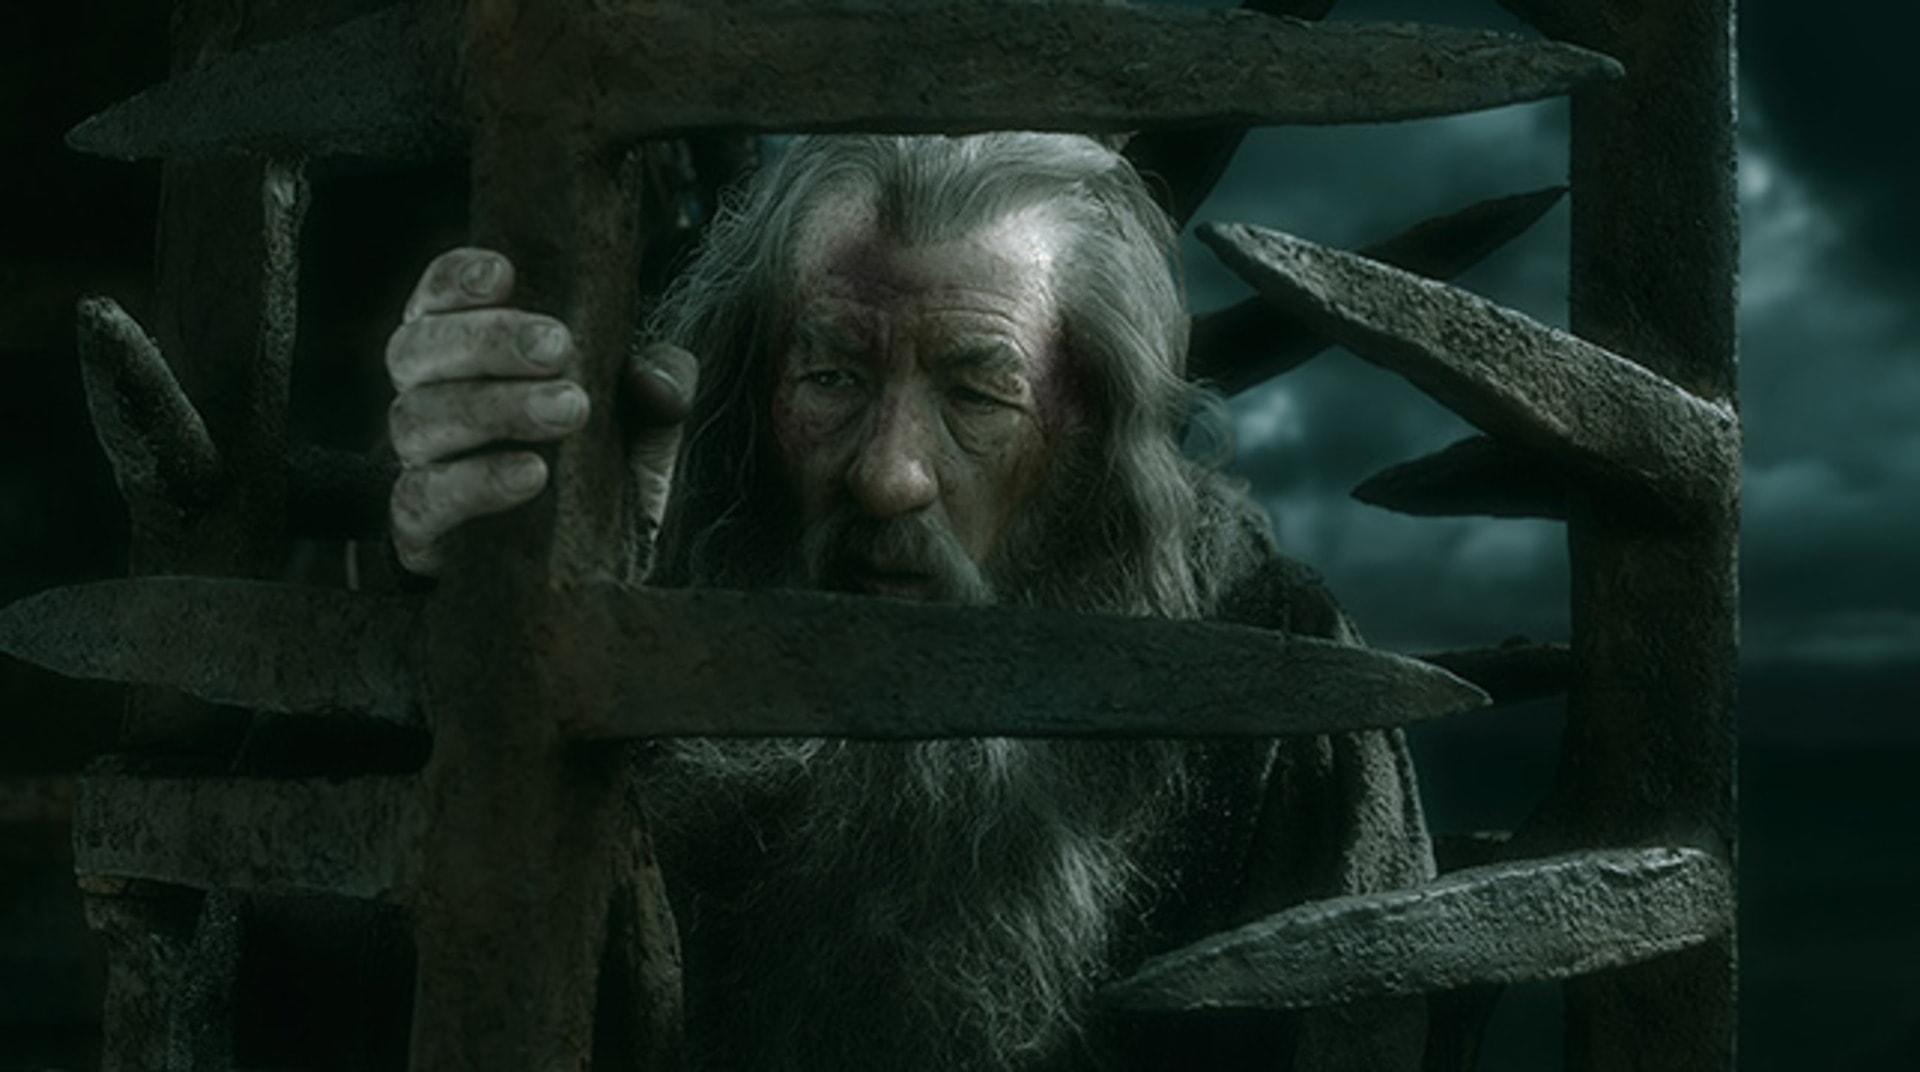 The Hobbit: The Battle of the Five Armies - Image 24